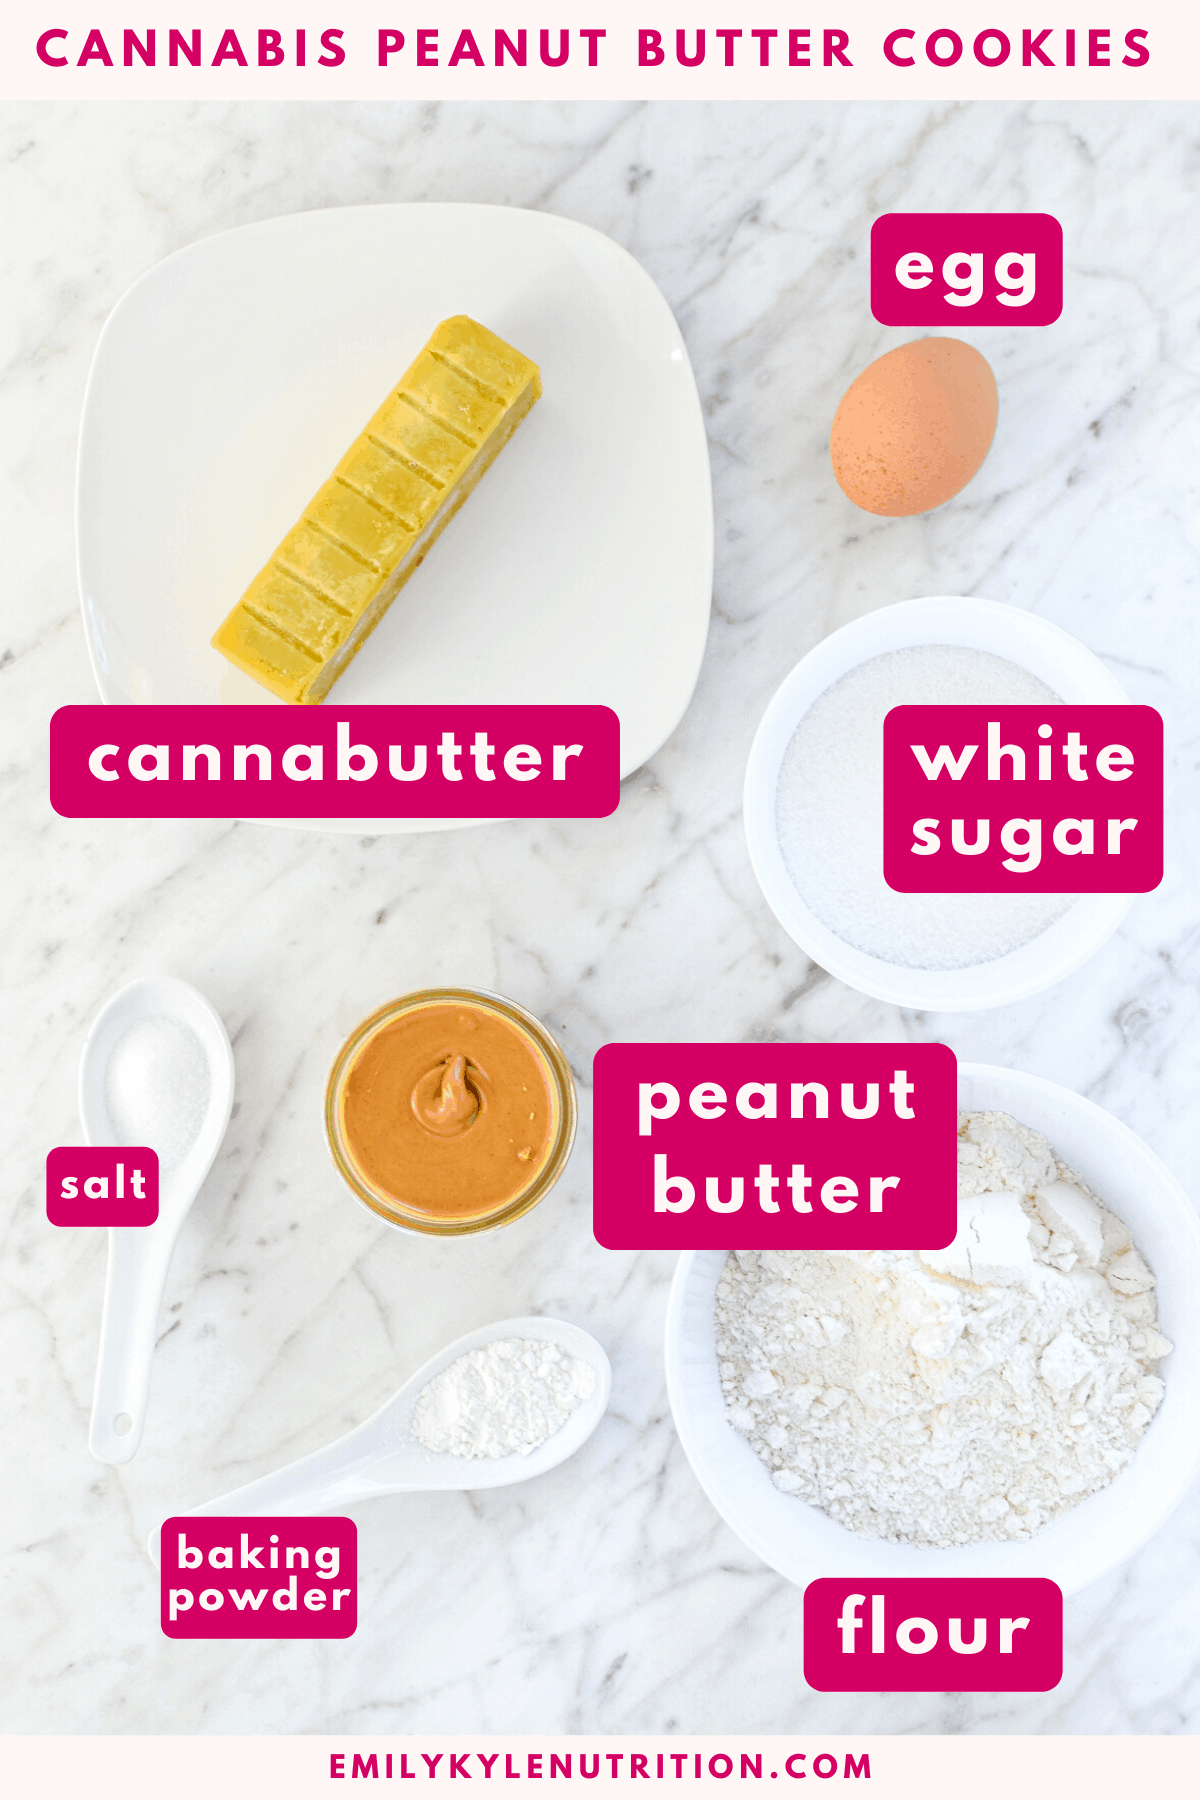 A white countertop with the ingredients needed to make peanut butter cookies including cannabutter eggs, white sugar peanut butter, flour, baking powder and salt